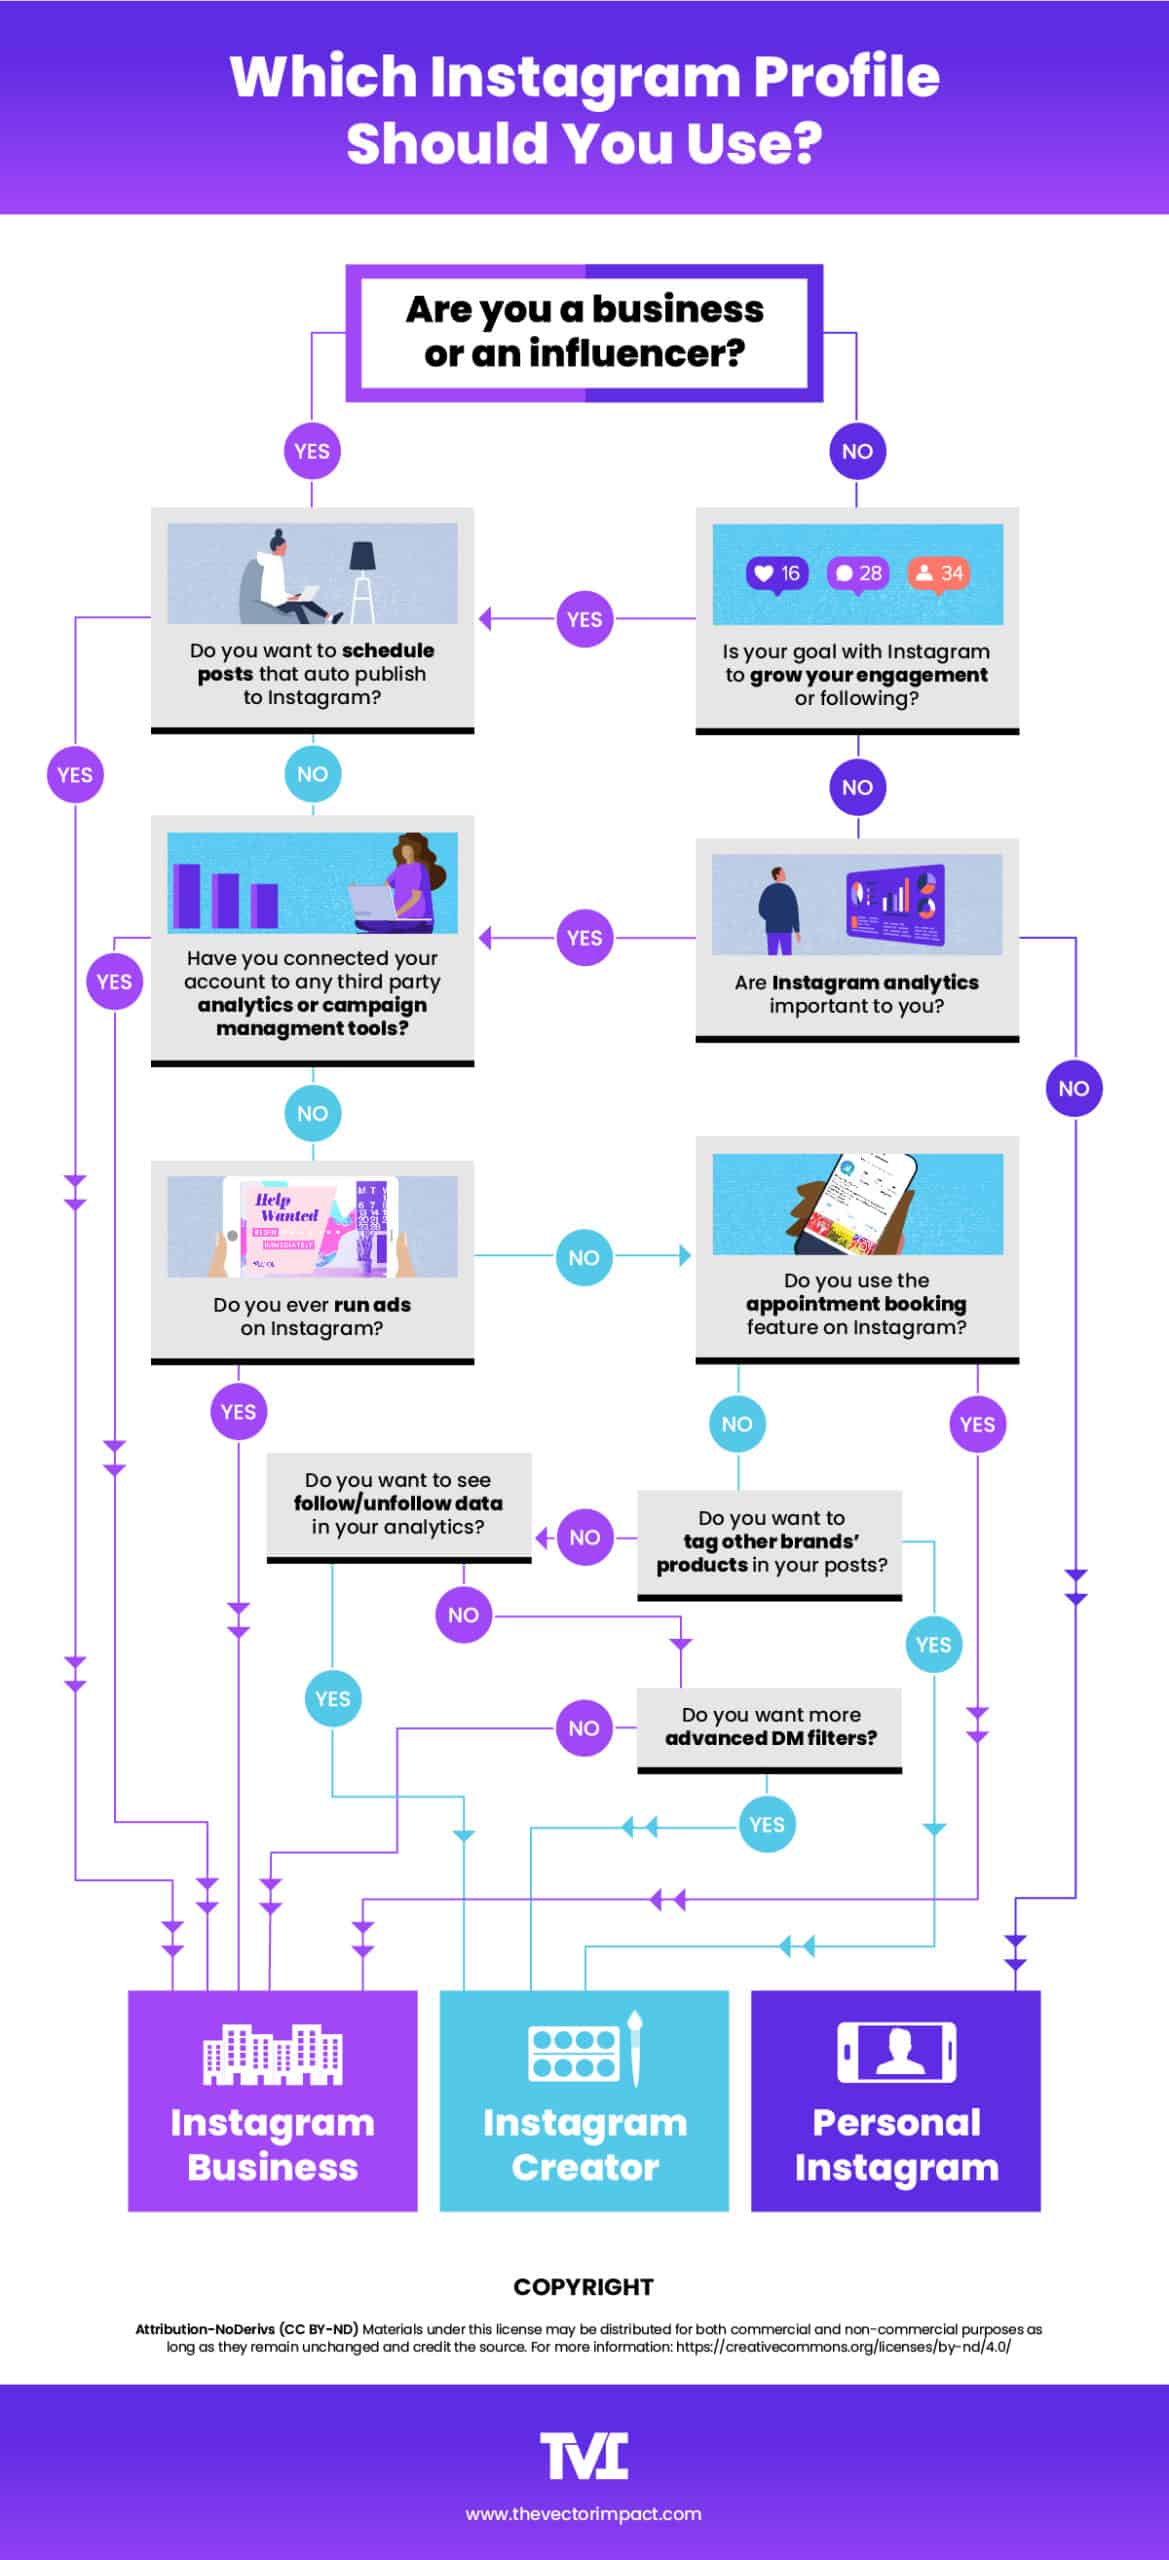 a flow chart to help determine which type of instagram profile you should use: business, creator, or personal